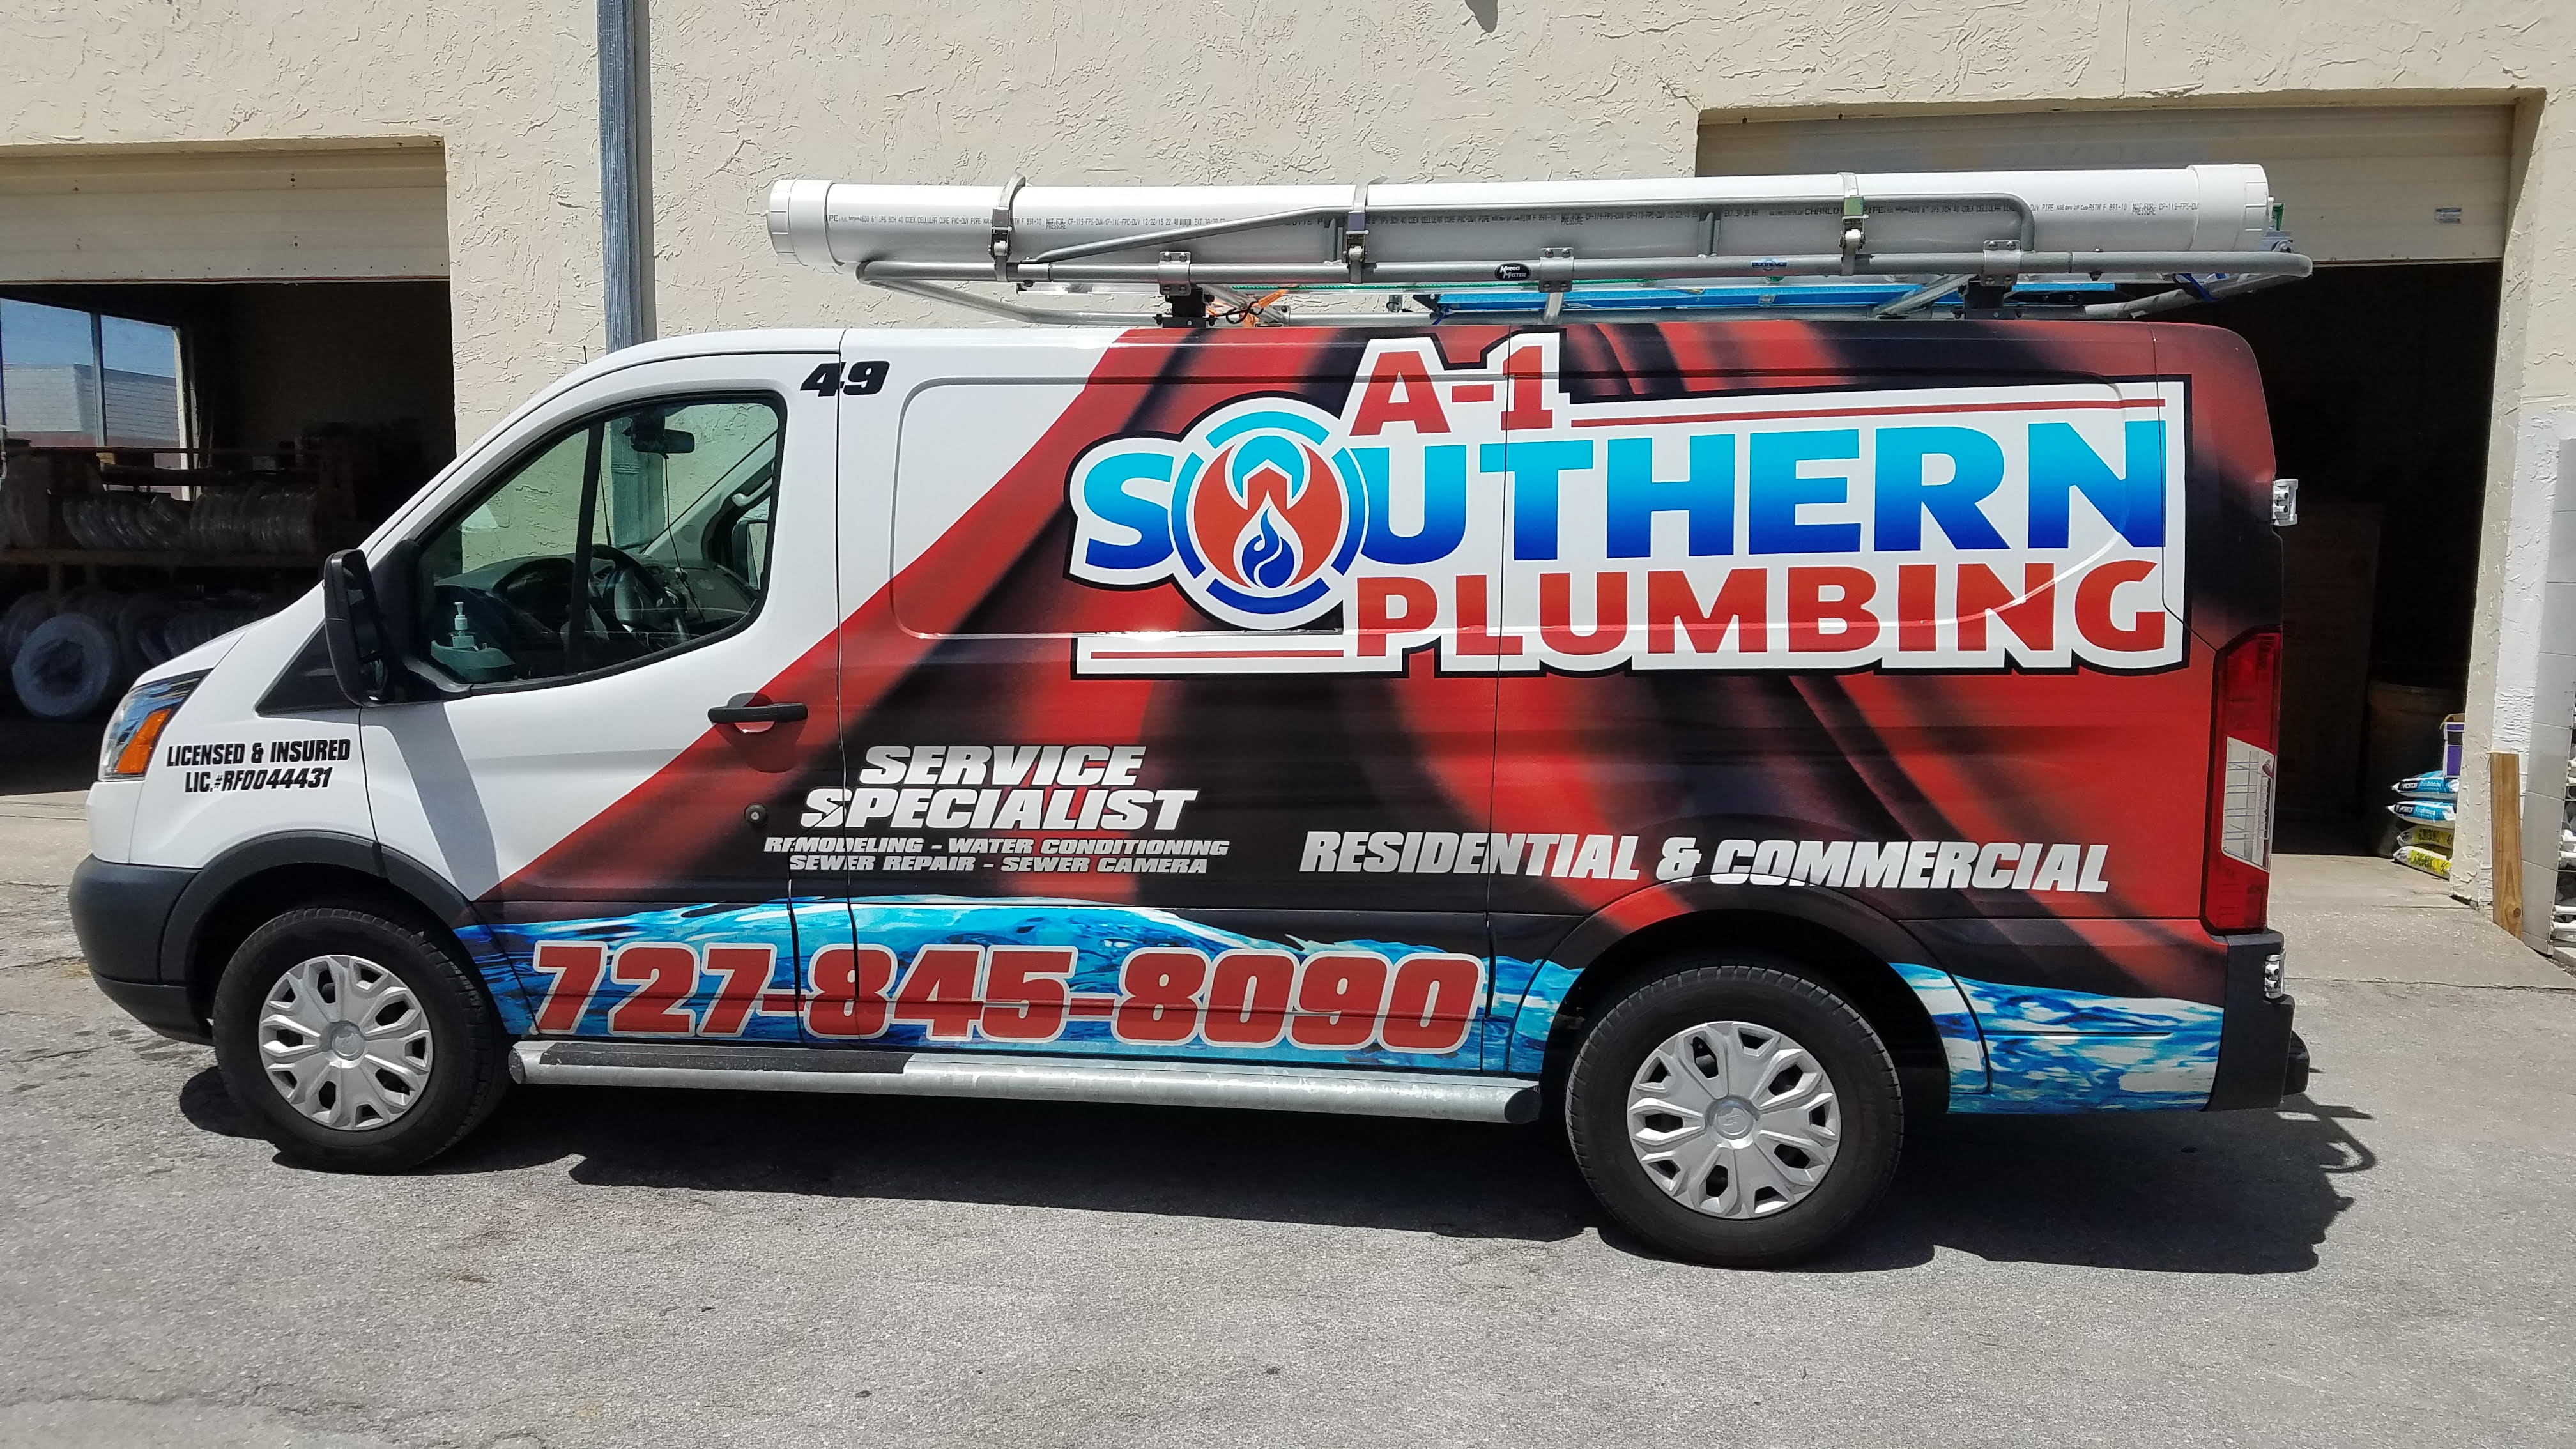 A-1 Southern Plumbing Truck